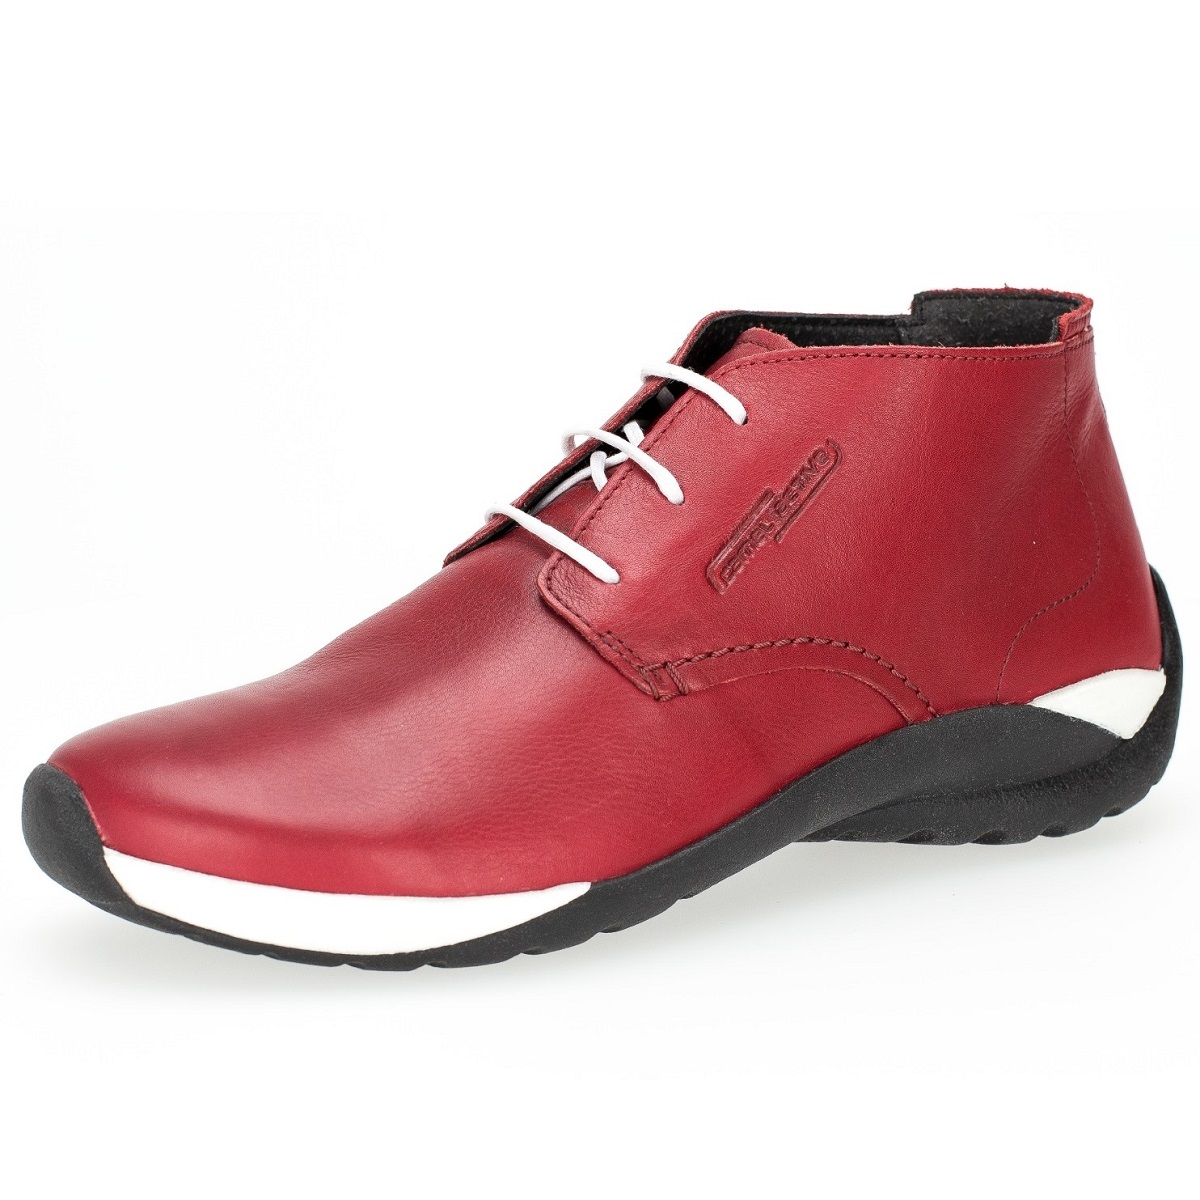 camel active 844.73.03 Moonlight 73 red